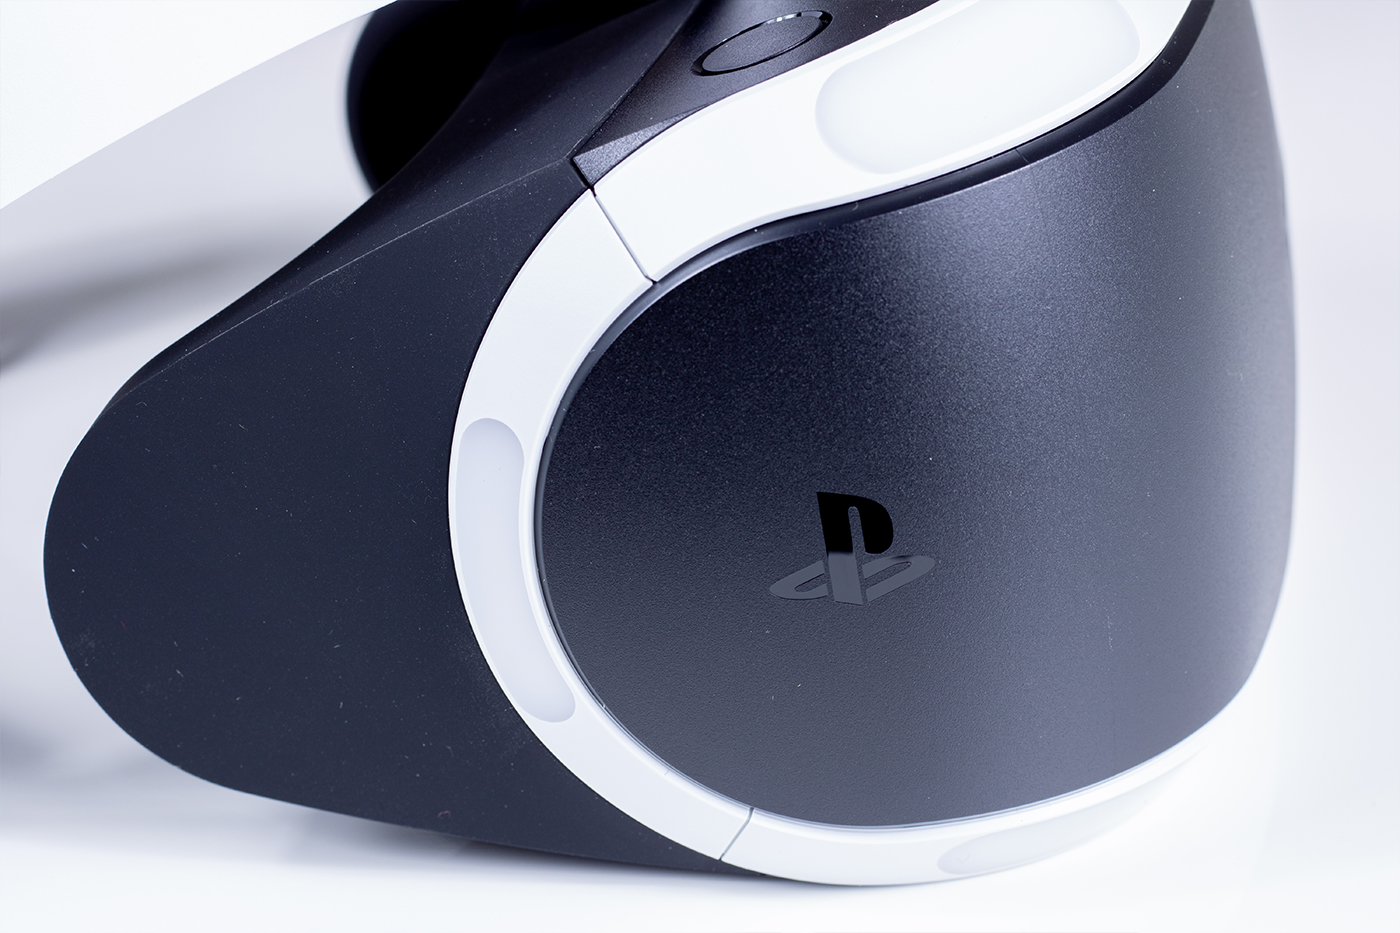 Sony Playstation VR Headset Side View